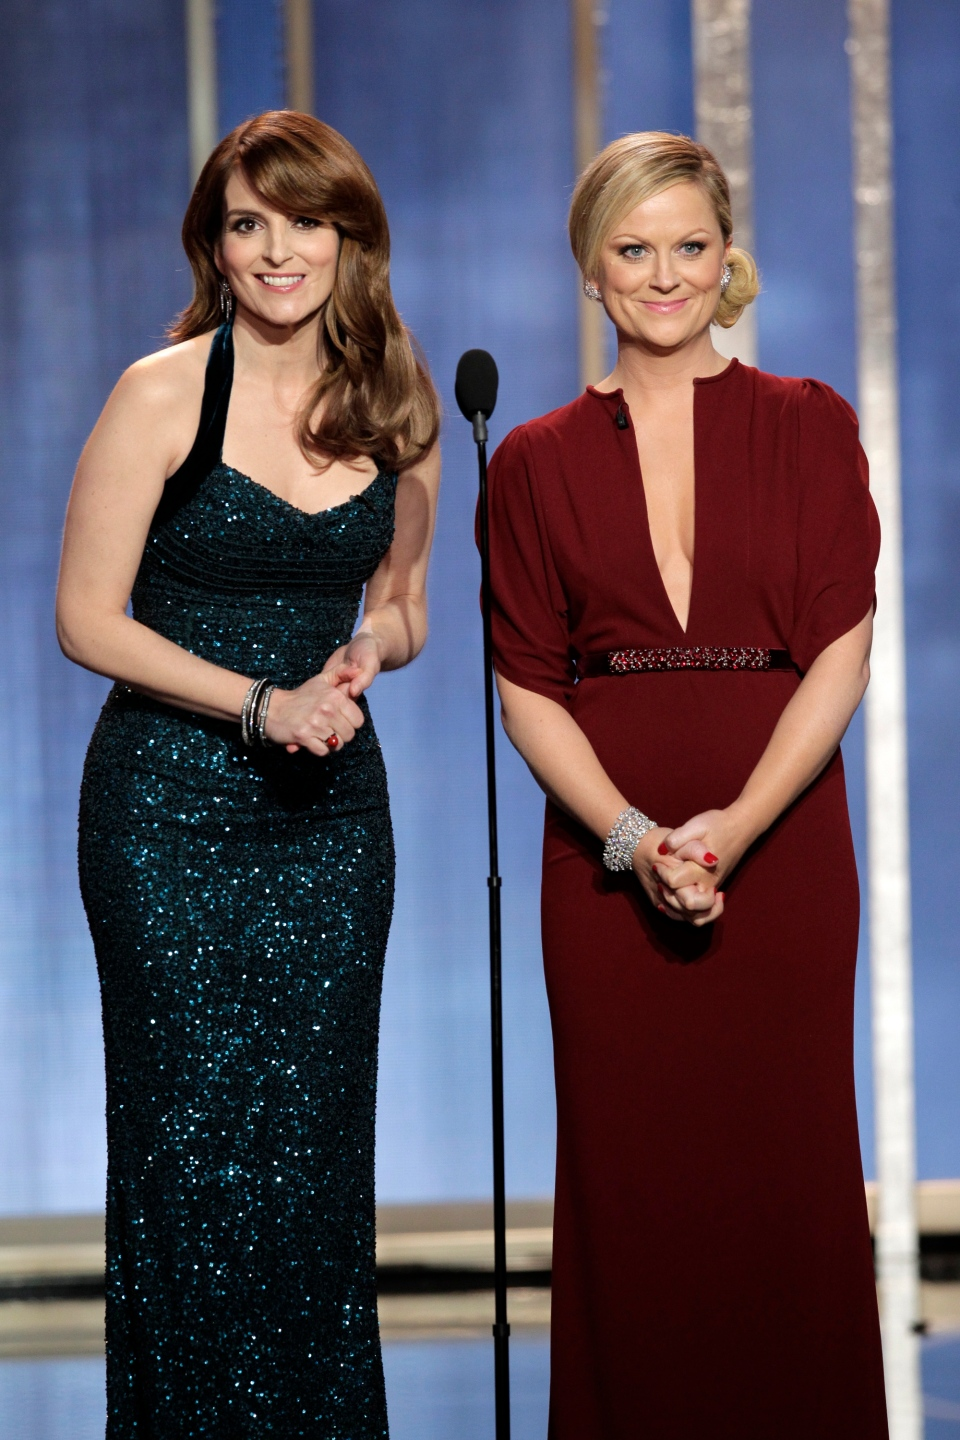 This image released by NBC shows co-host Tina Fey, left, and Amy Poehler on stage during the 70th Annual Golden Globe Awards held at the Beverly Hilton Hotel on Sunday, Jan. 13, 2013, in Beverly Hills, Calif. (AP/ Handout)